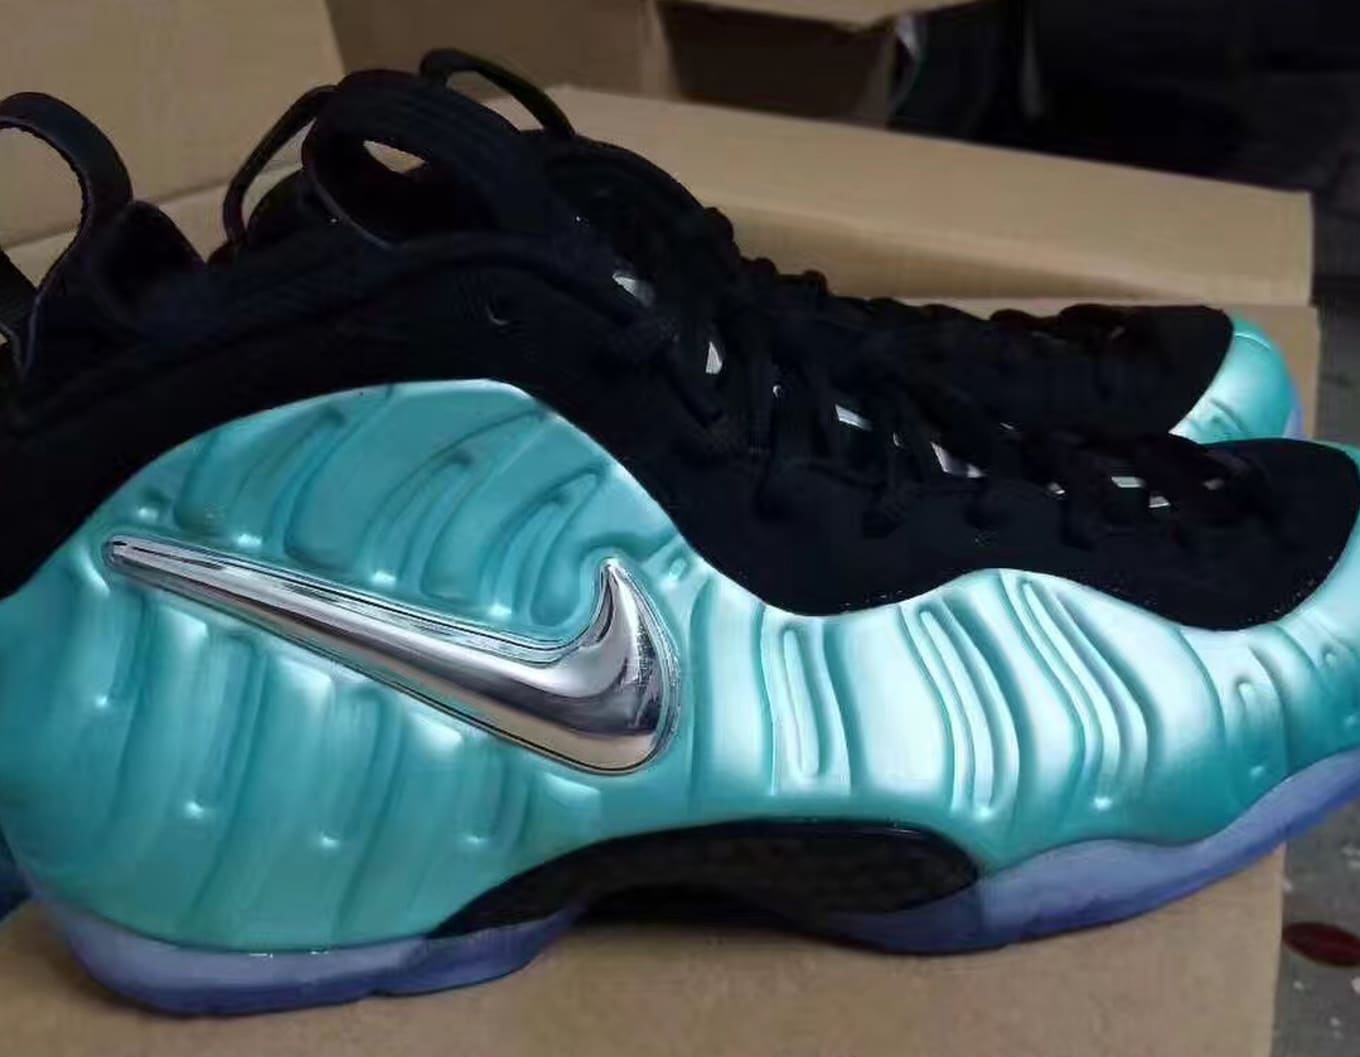 meet 329e5 8a8b2 Nike Air Foamposite Pro